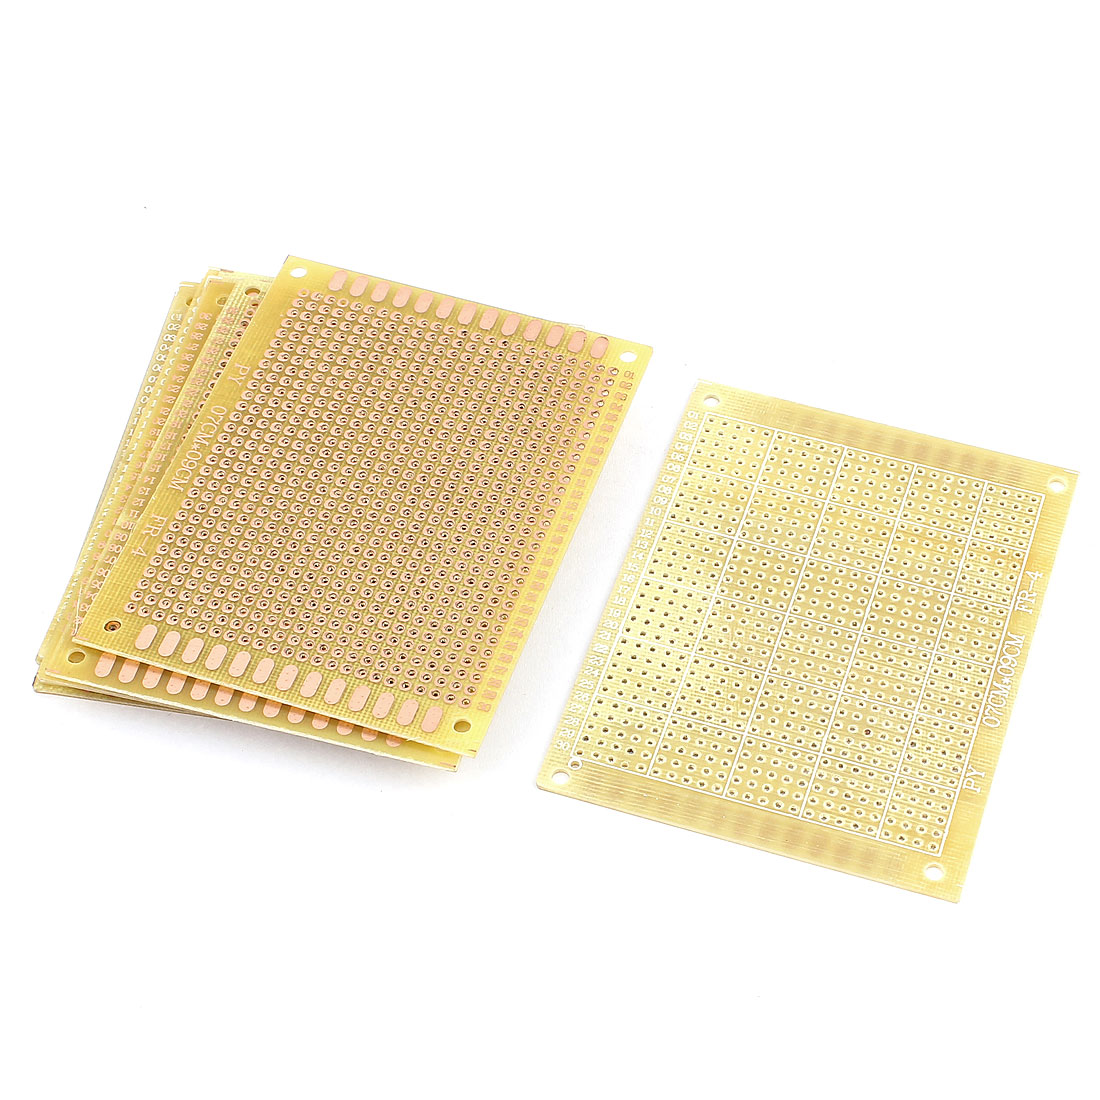 7cm x 9cm Electronic DIY Prototype Paper Single Side PCB Universal Board 10Pcs